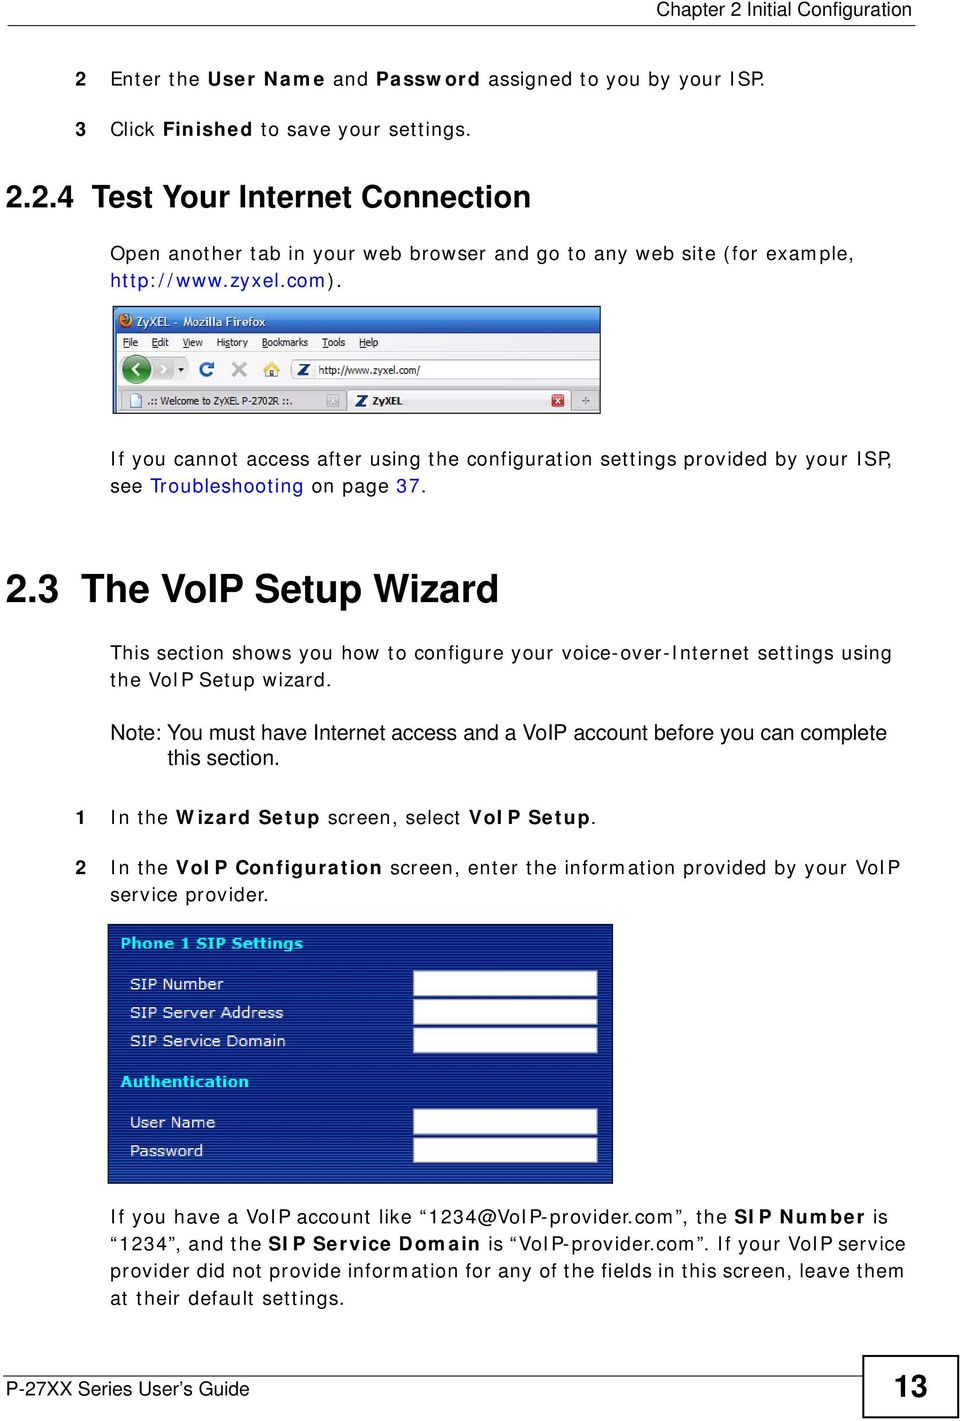 3 The VoIP Setup Wizard This section shows you how to configure your voice-over-internet settings using the VoIP Setup wizard.